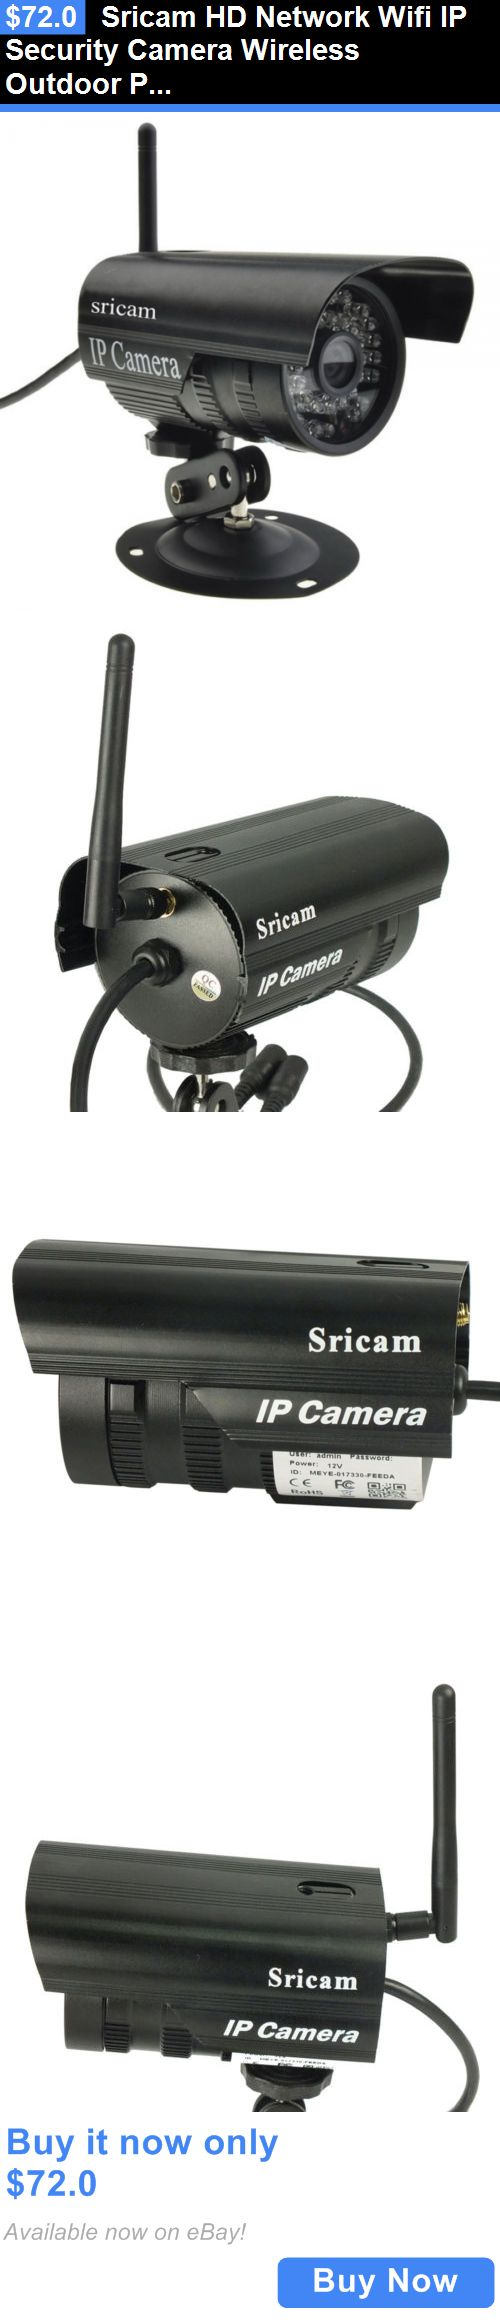 Security Cameras: Sricam Hd Network Wifi Ip Security Camera Wireless Outdoor P2p Ir Night Vision BUY IT NOW ONLY: $72.0